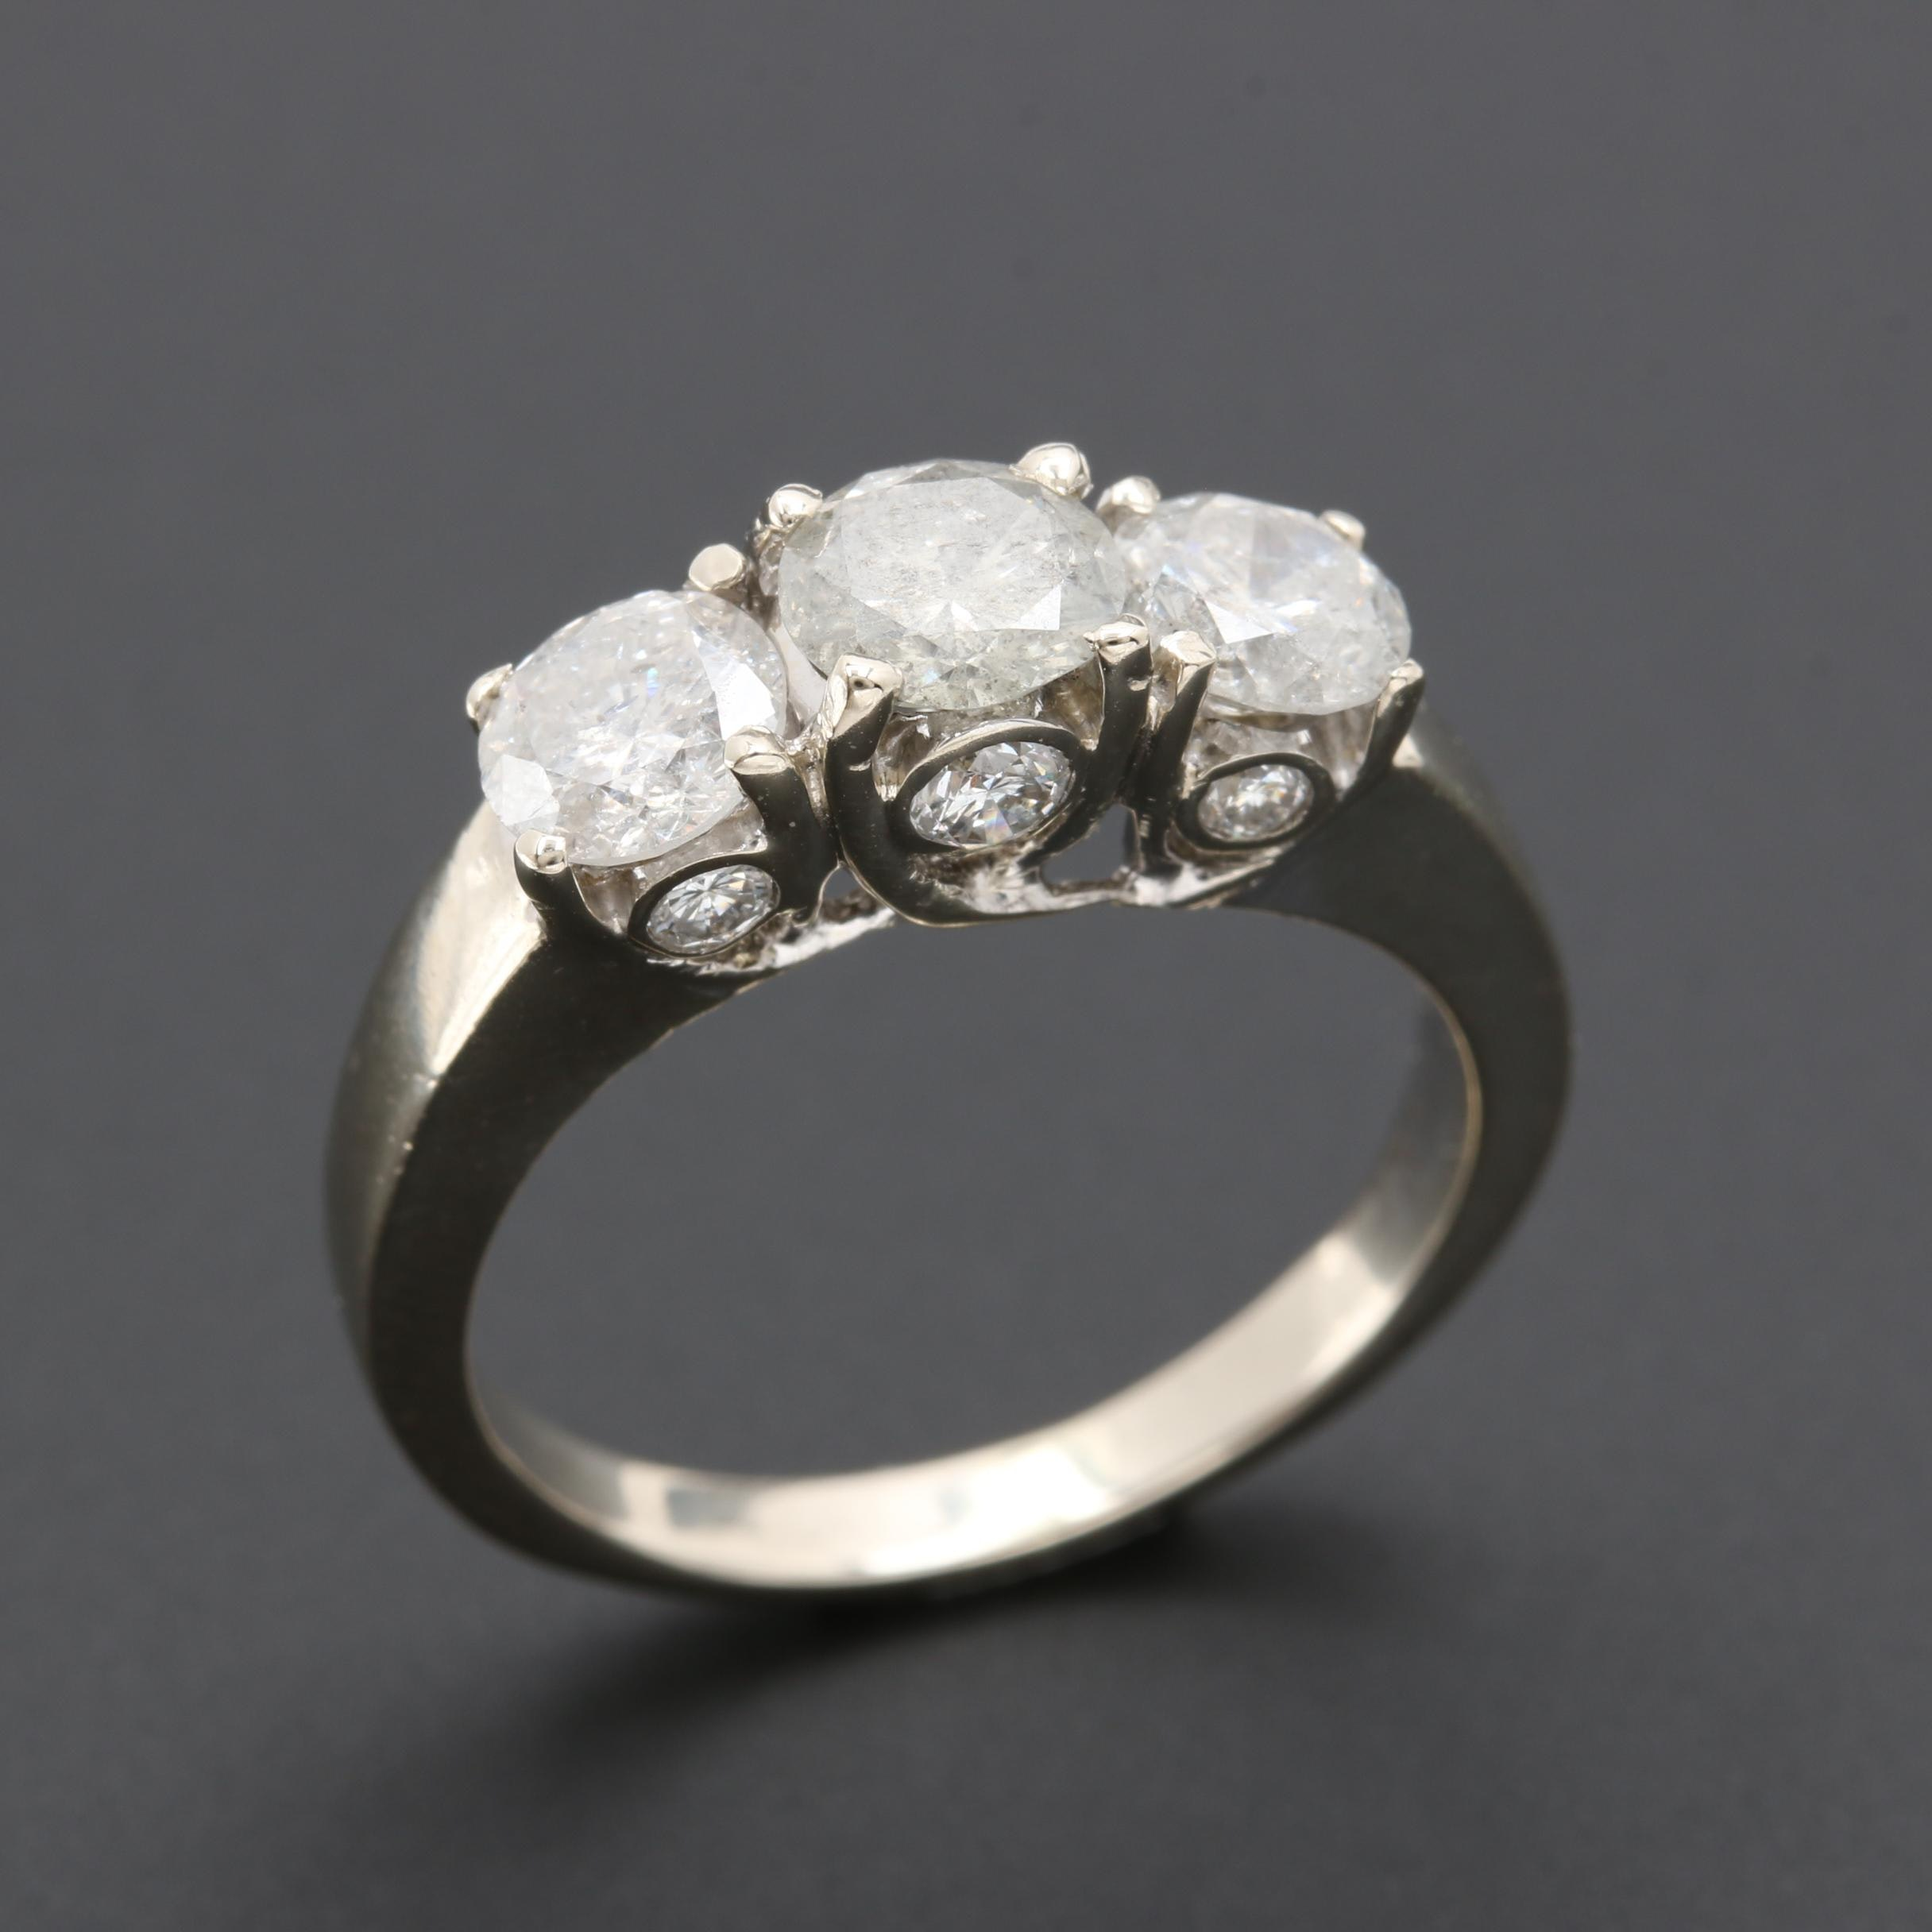 14K White Gold 1.71 CTW Diamond Ring